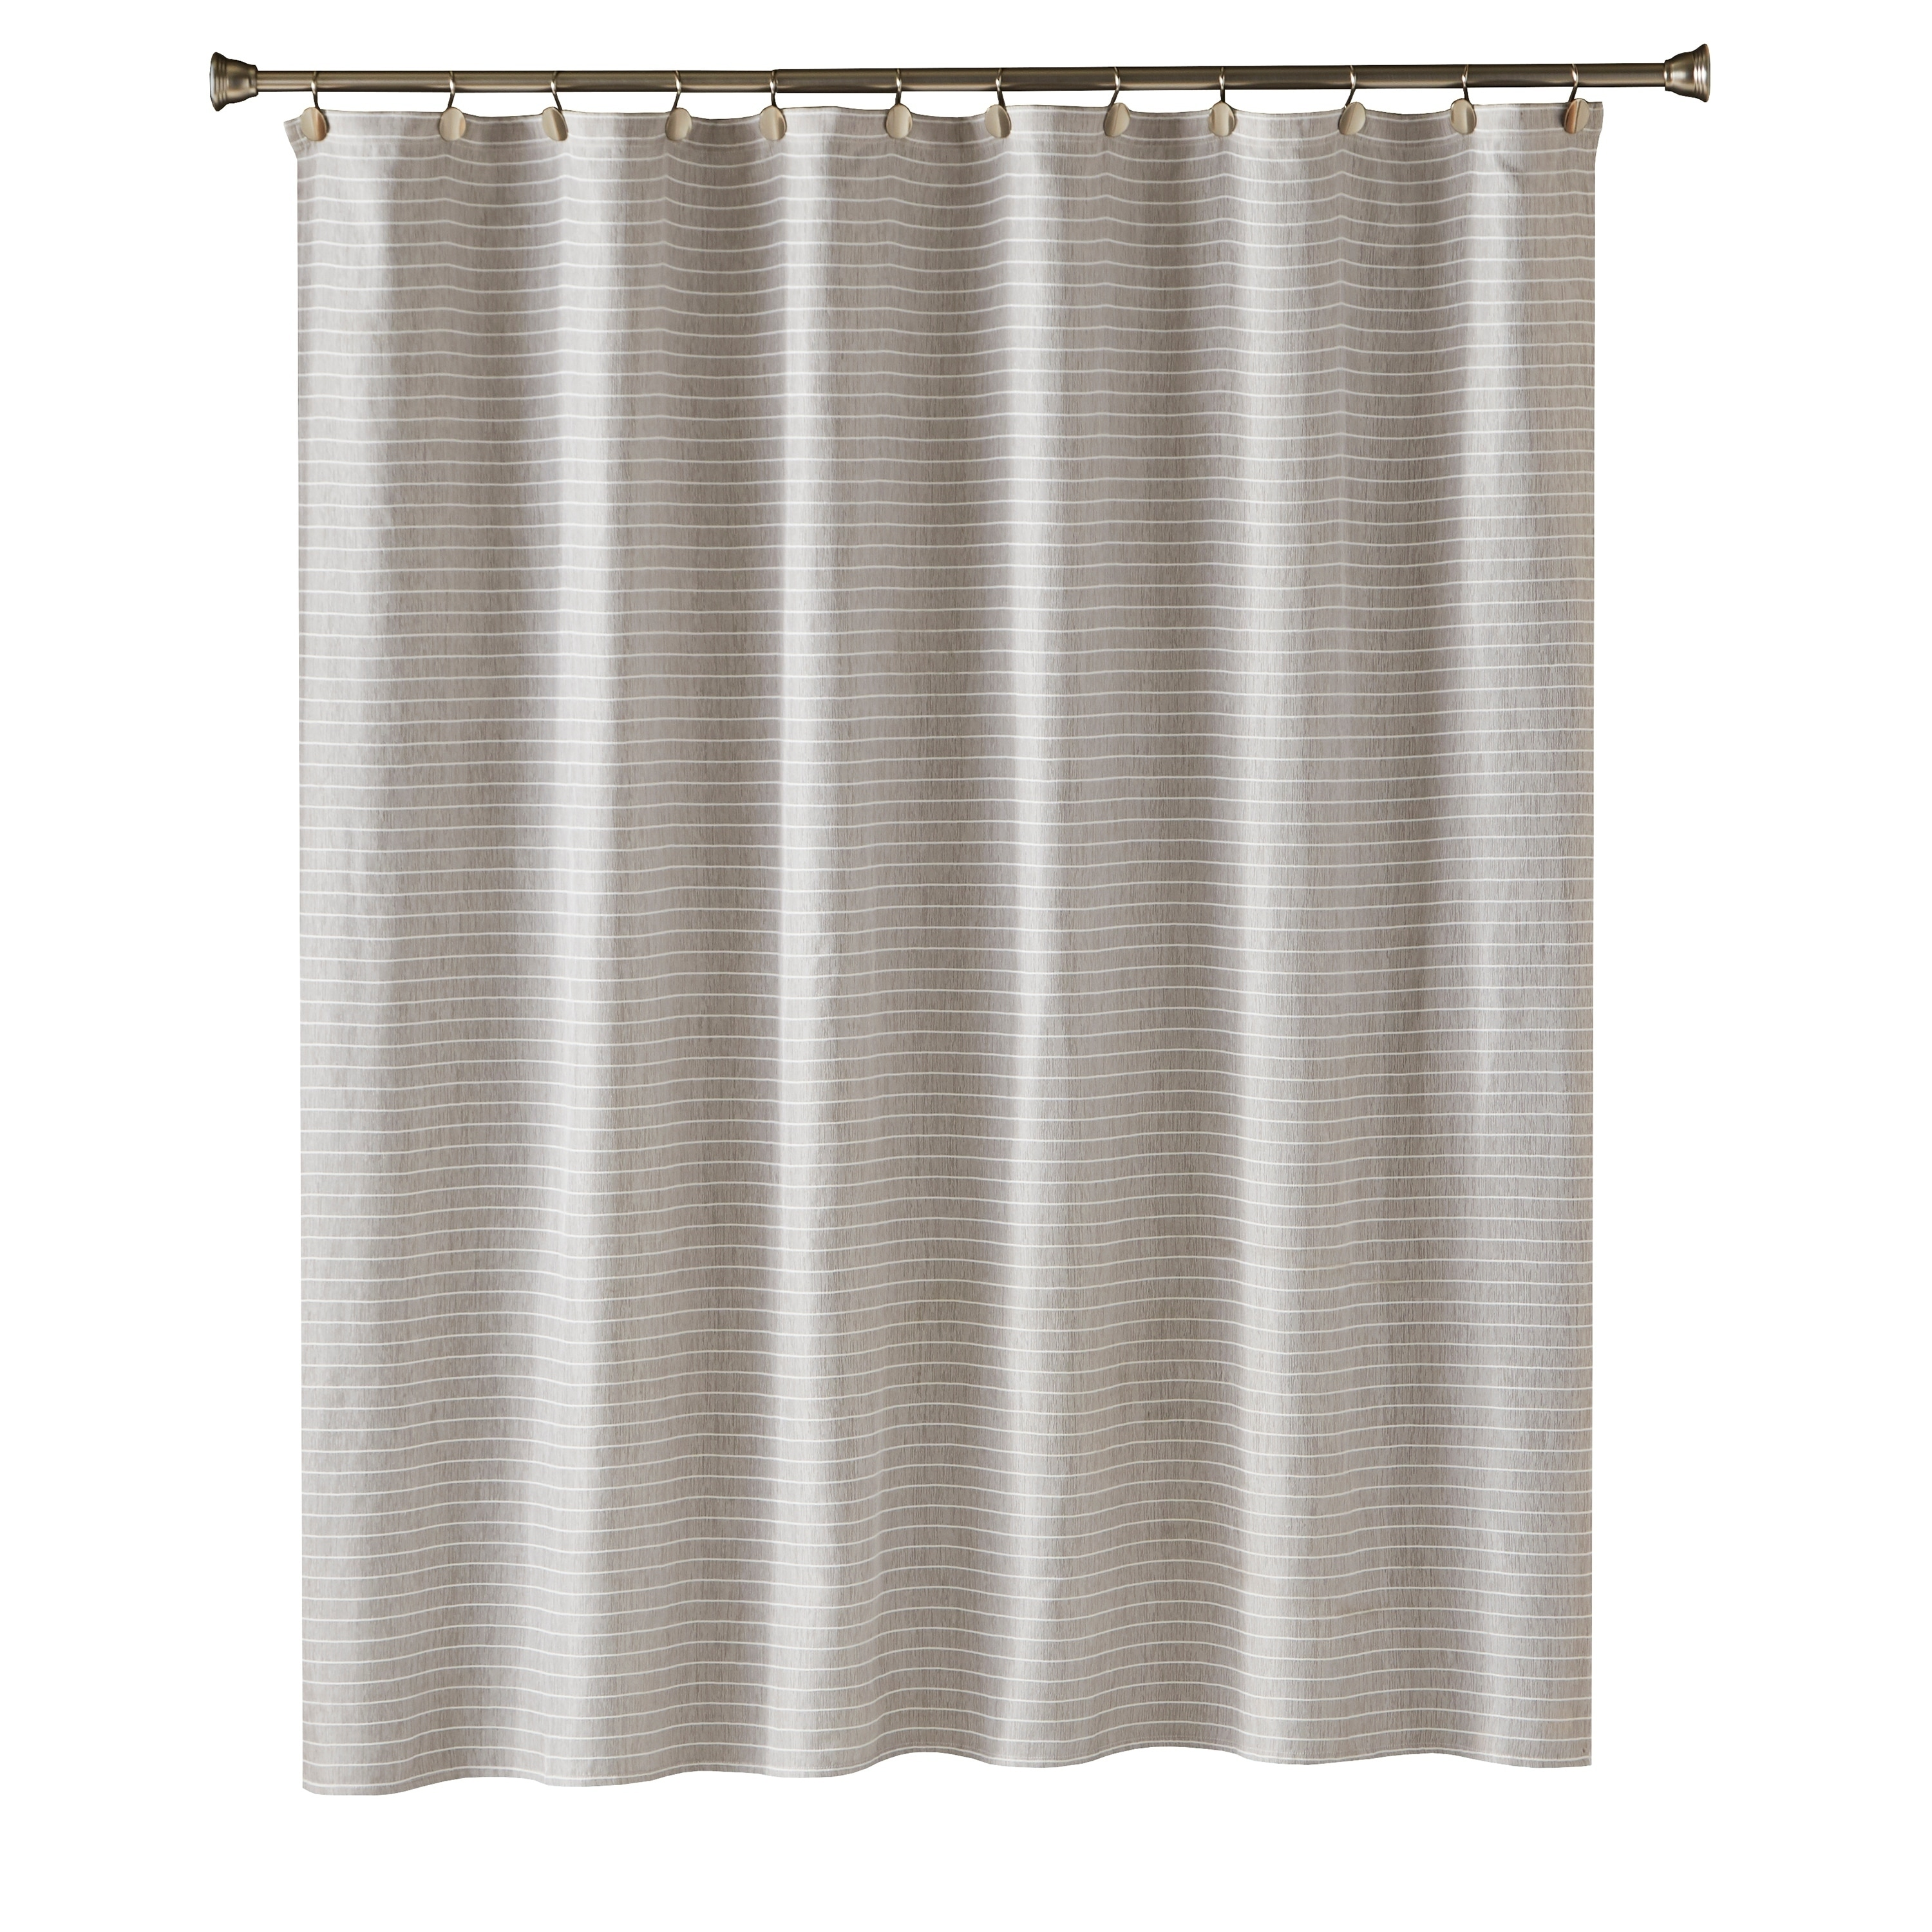 Skl Home Neutral Stripe Shower Curtain